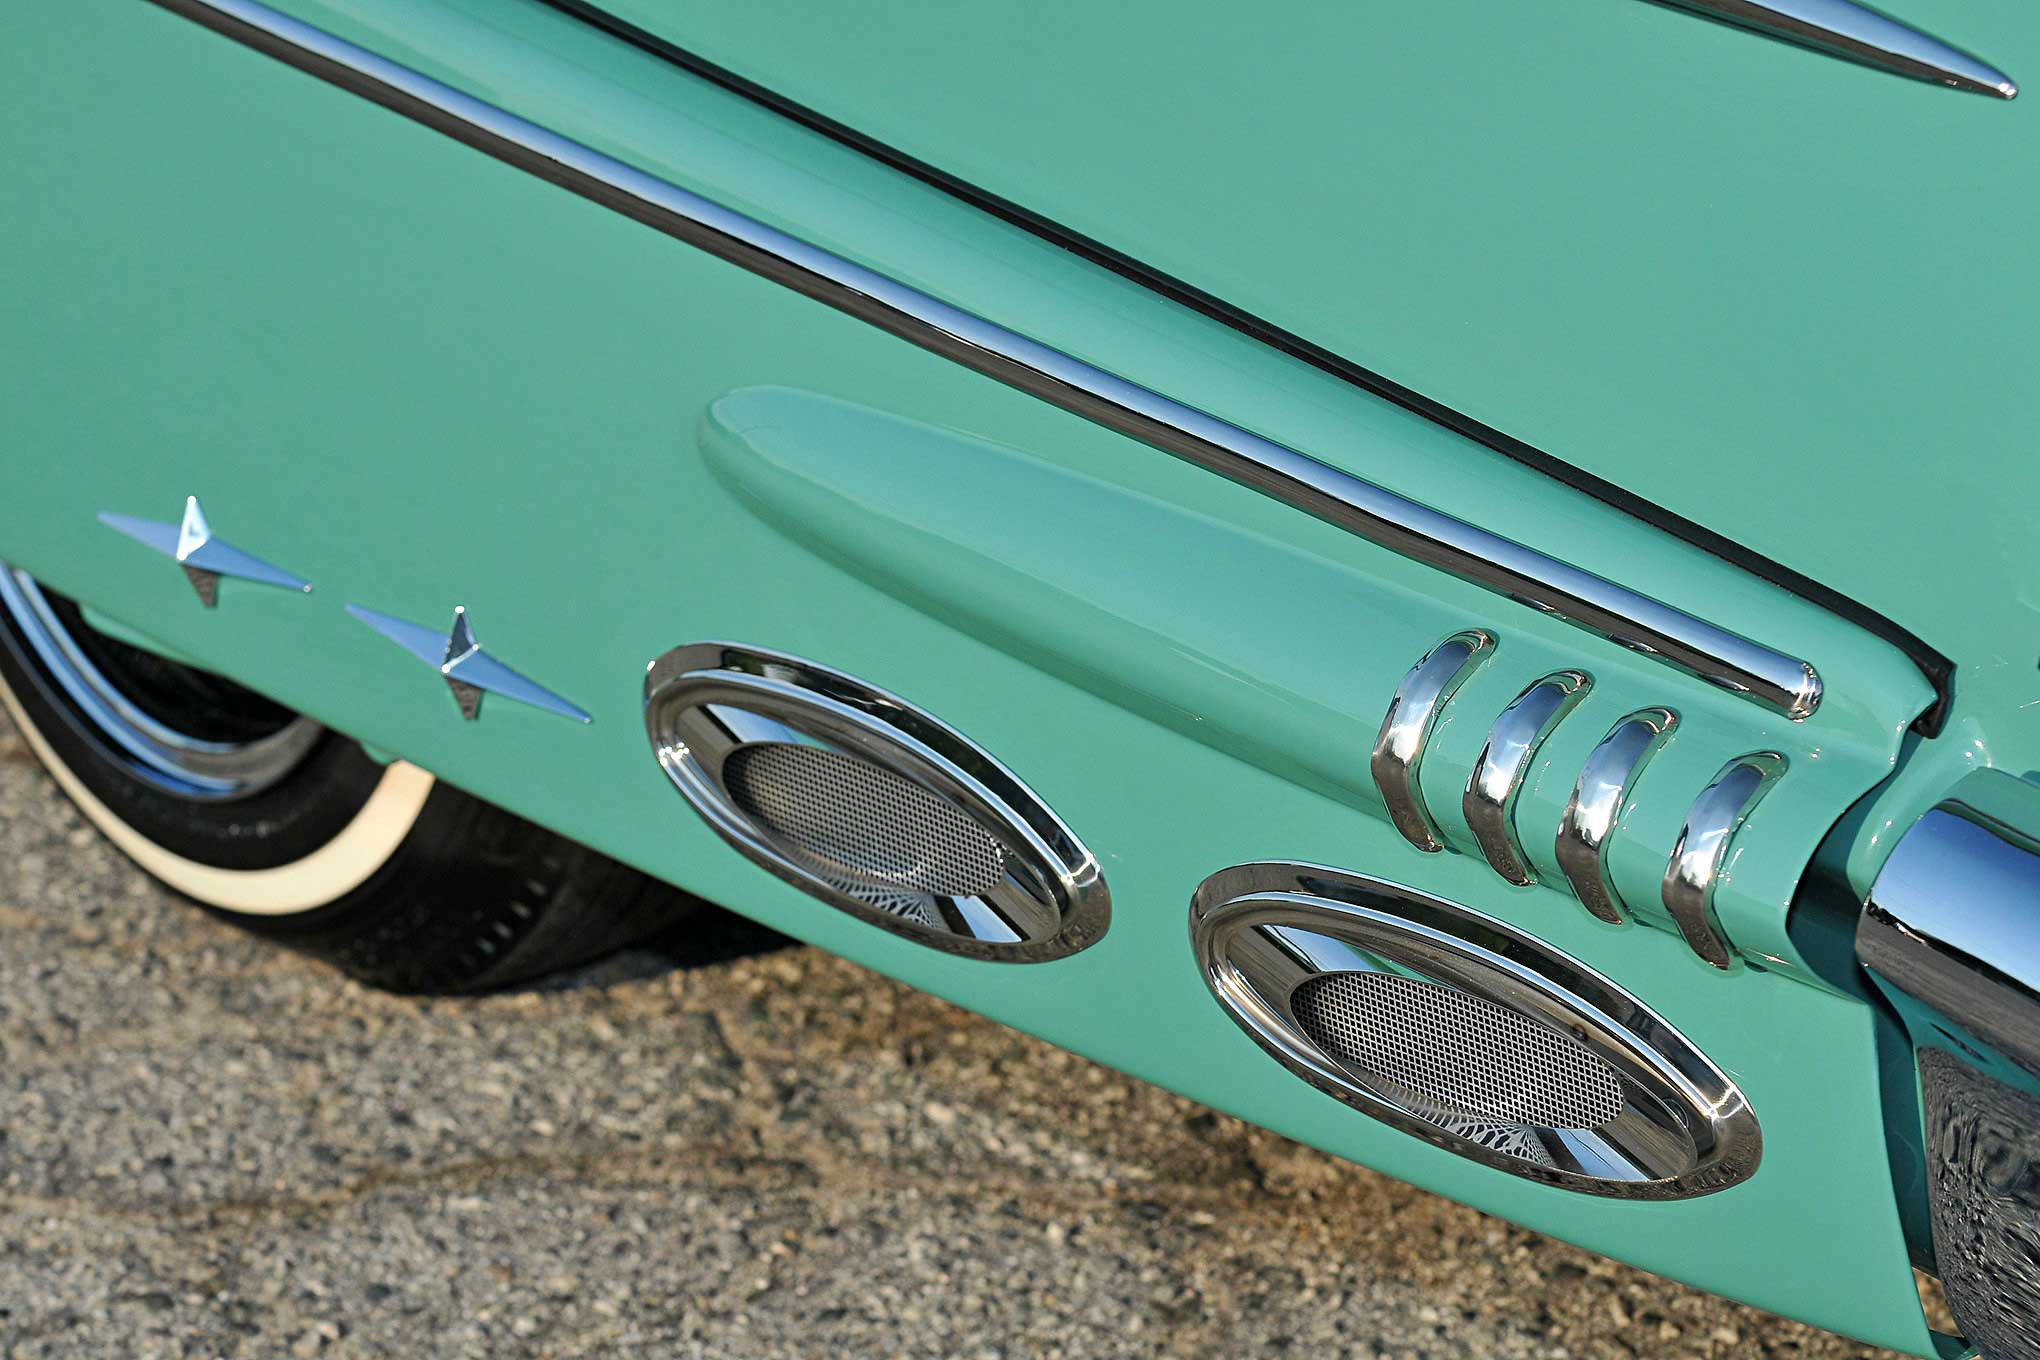 1958 Chevrolet Impala Convertible The Holy Grail